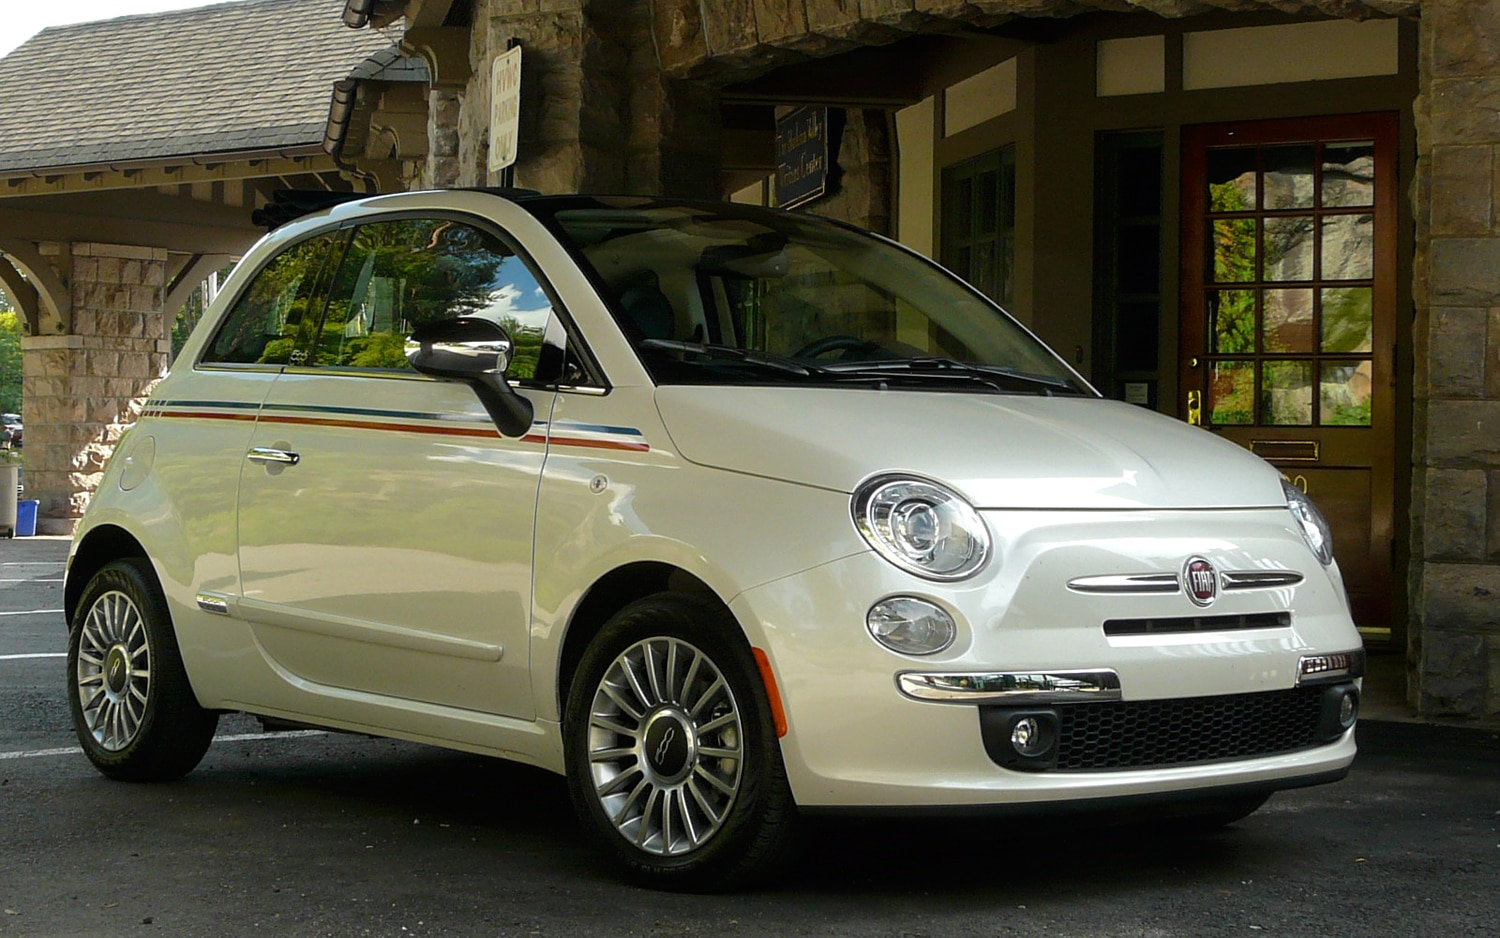 2012 Fiat 500C Front Right Side View2